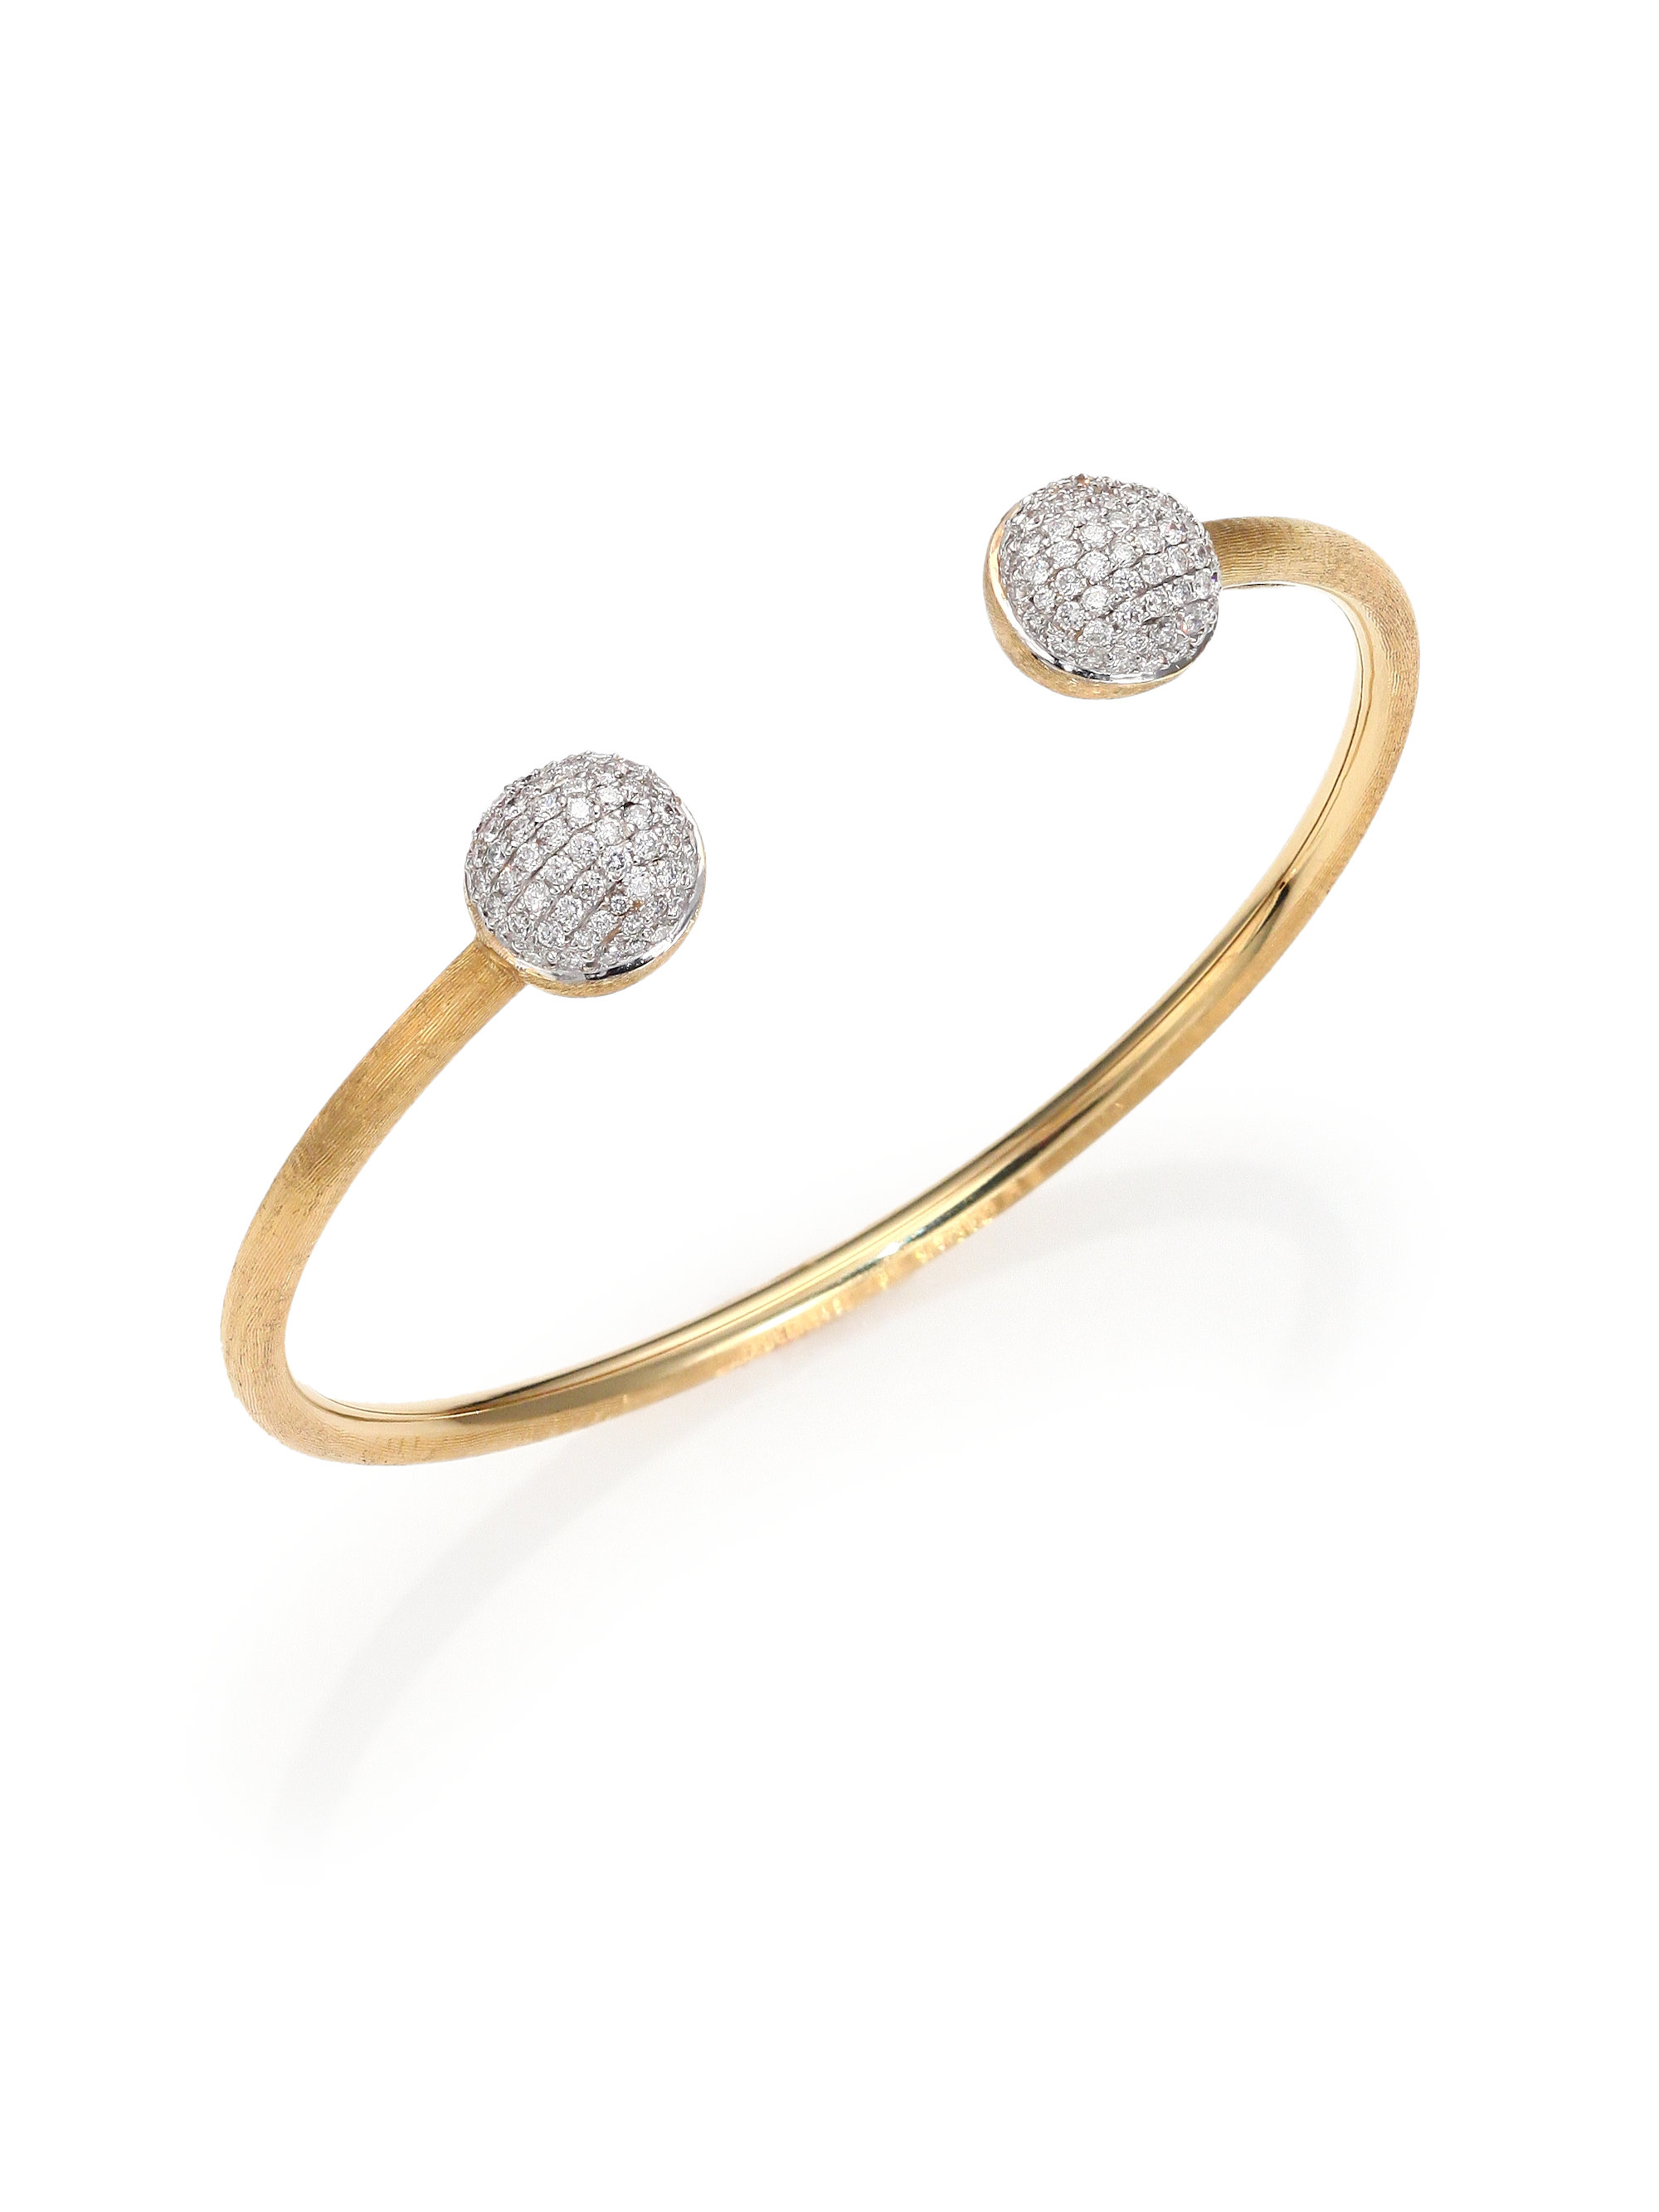 Marco Bicego 18k Gold Africa Diamond Bangle Bracelet